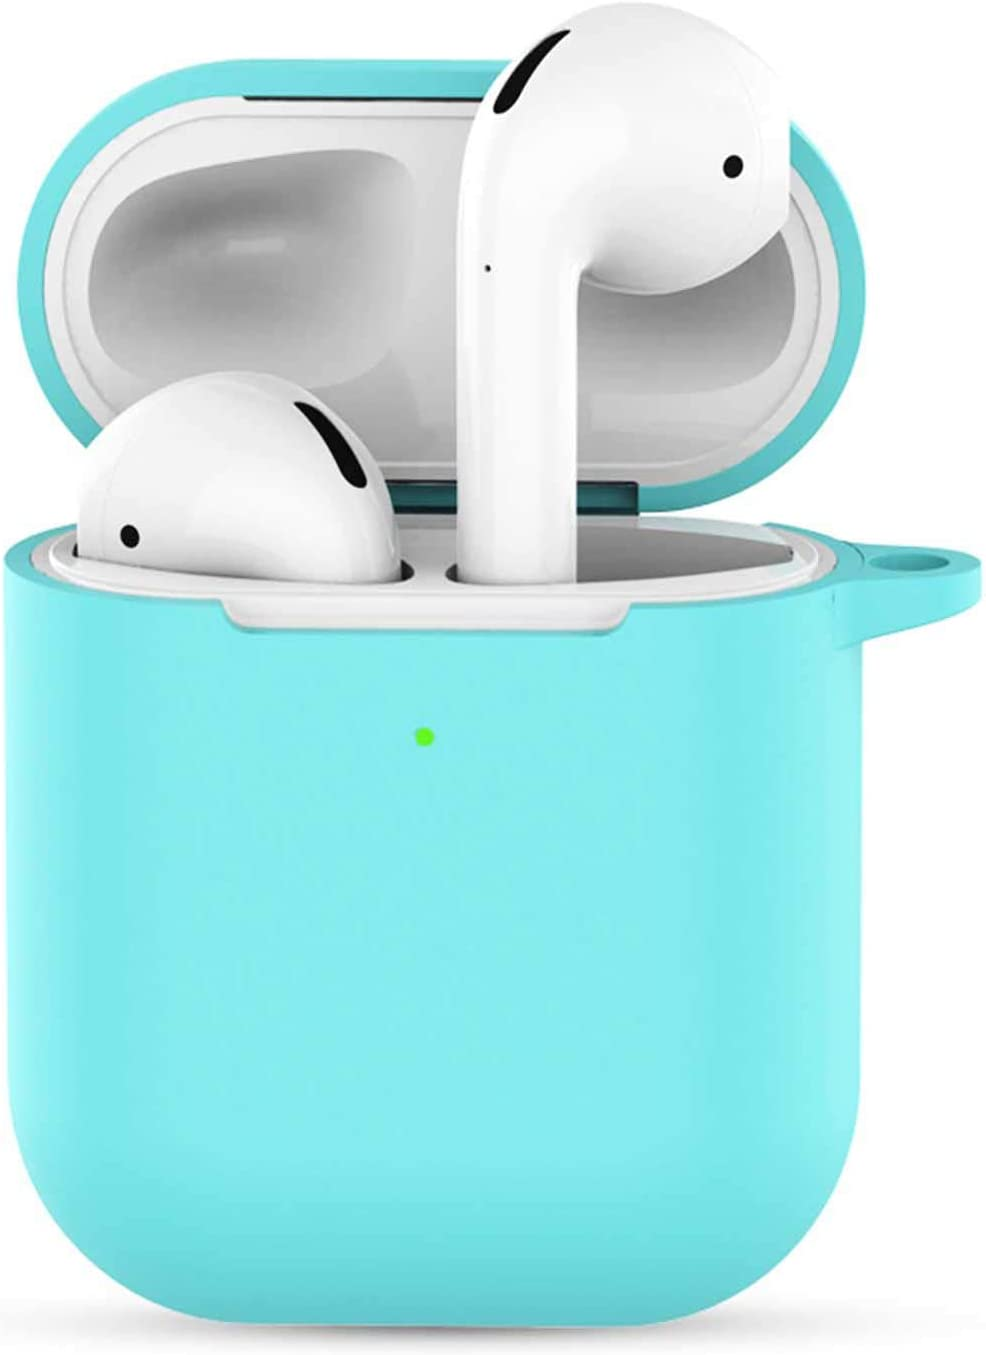 Compatible with Airpods 2 Wireless Charging Case,Airpods 2 Accessories Shockproof Case Cover Portable & Protective Silicone Skin Cover Case Compatible Qi Charging Lightning -Sky Blue